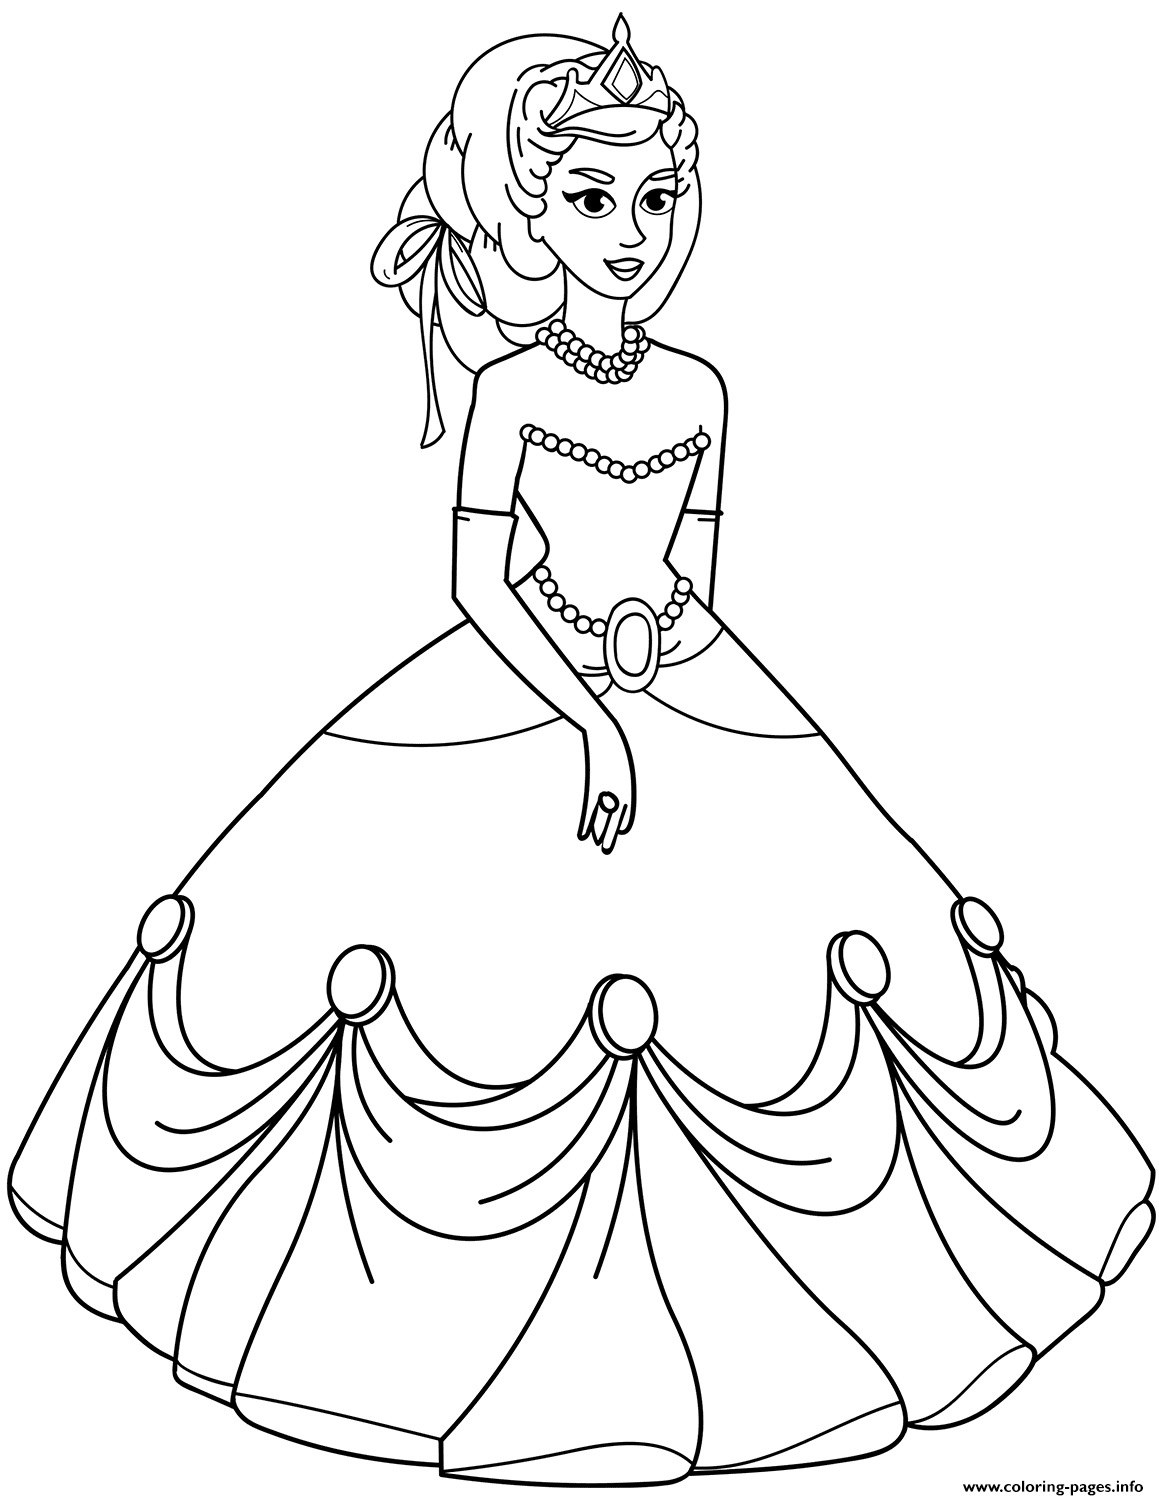 Princess In Ball Gown Dress Coloring Pages Printable